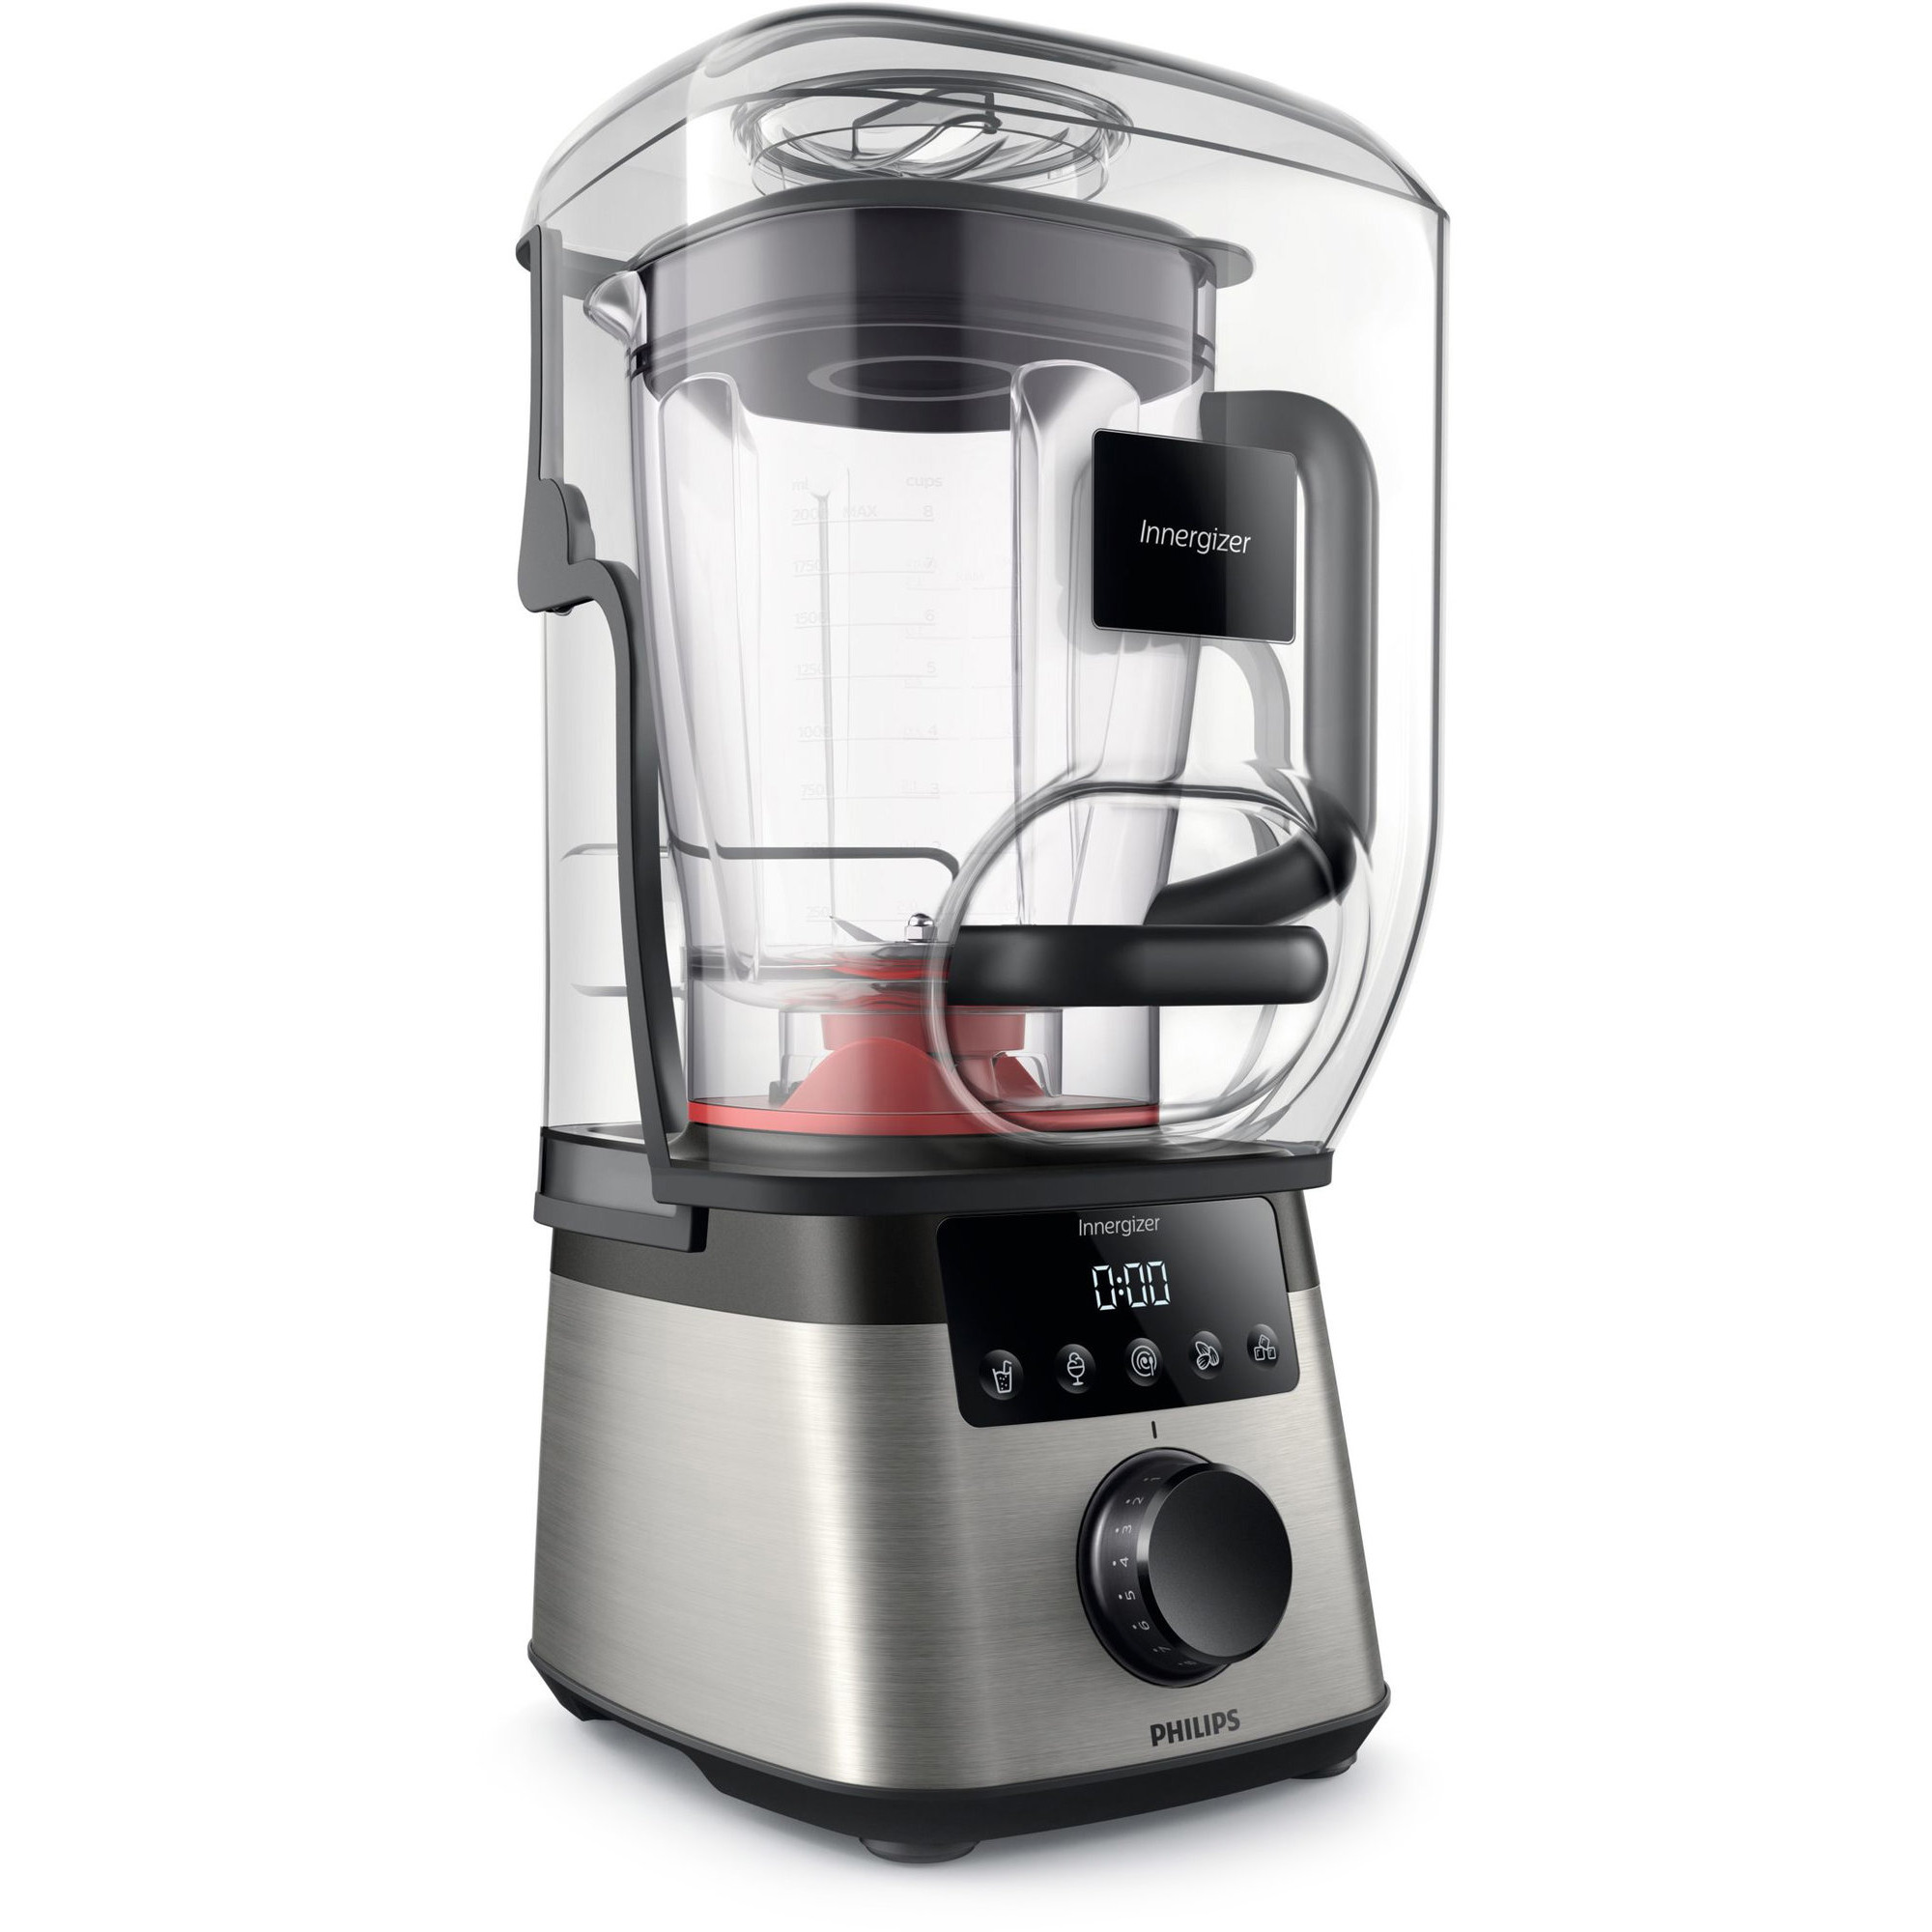 Philips HR3868/00 Blender Innergizer highsp.